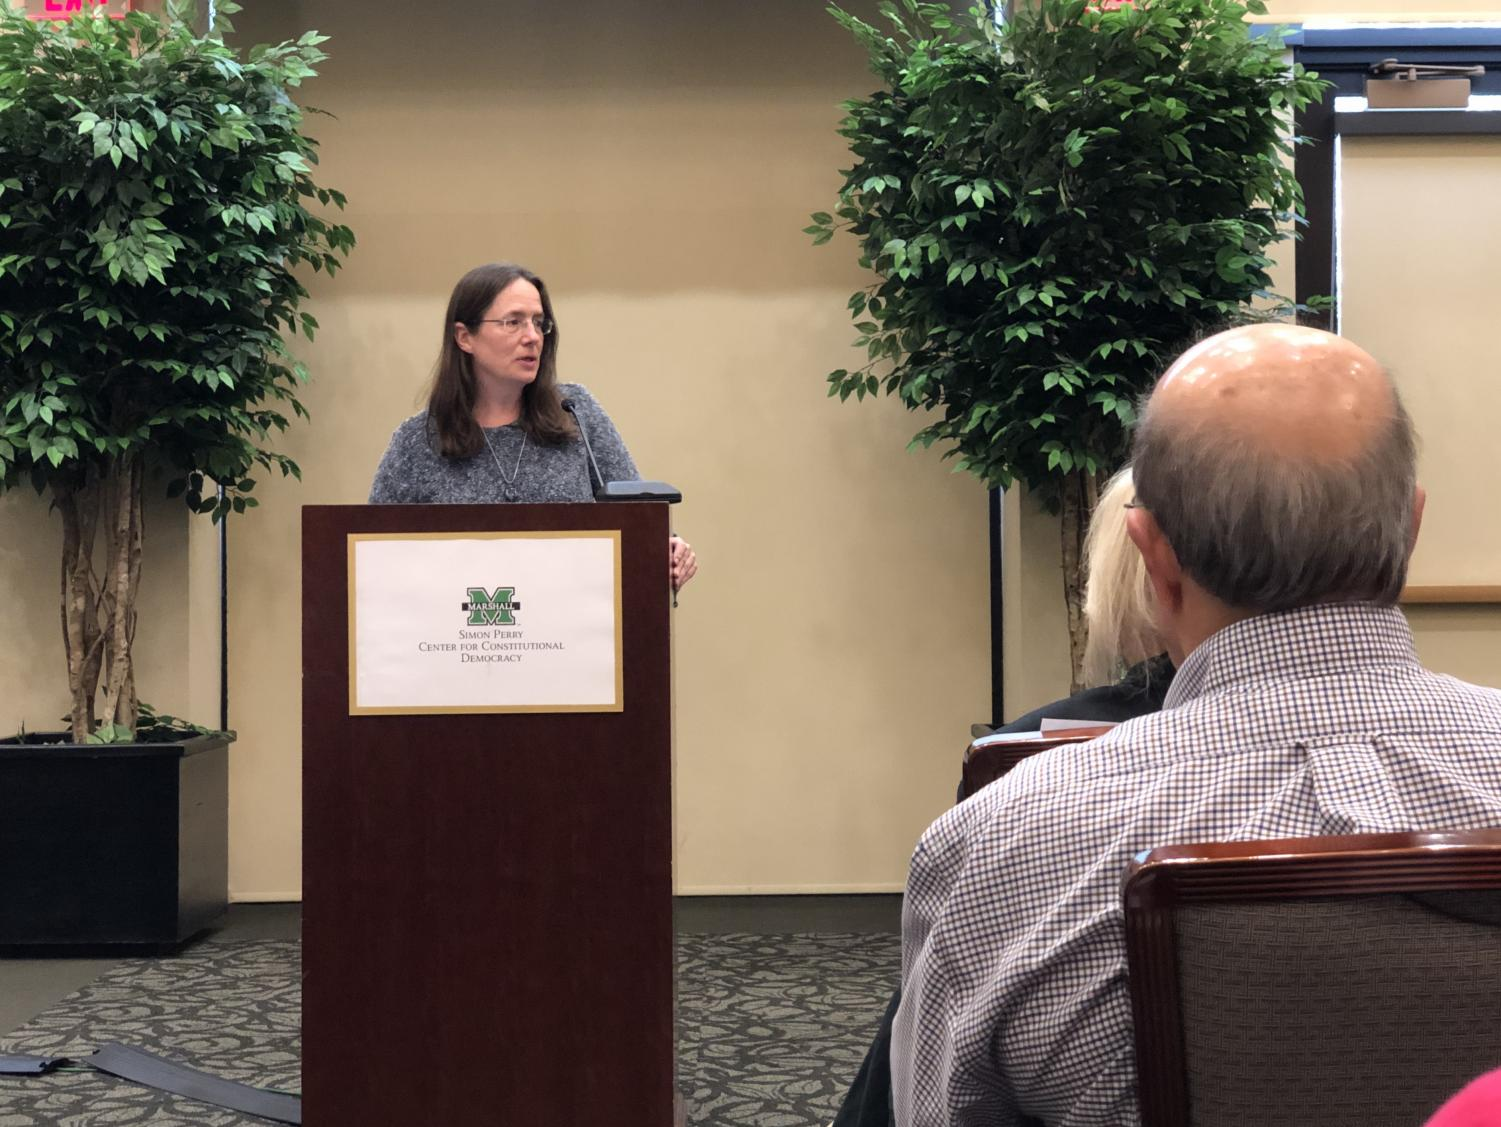 Heather Cox Richardson, a professor of history at Boston College and author, speaks about the ideologies of the South and the West, during an lecture in the Amicus Curiae Lecture Series on Constitutional Democracy Thursday in the Brad D. Smith Foundation Hall.